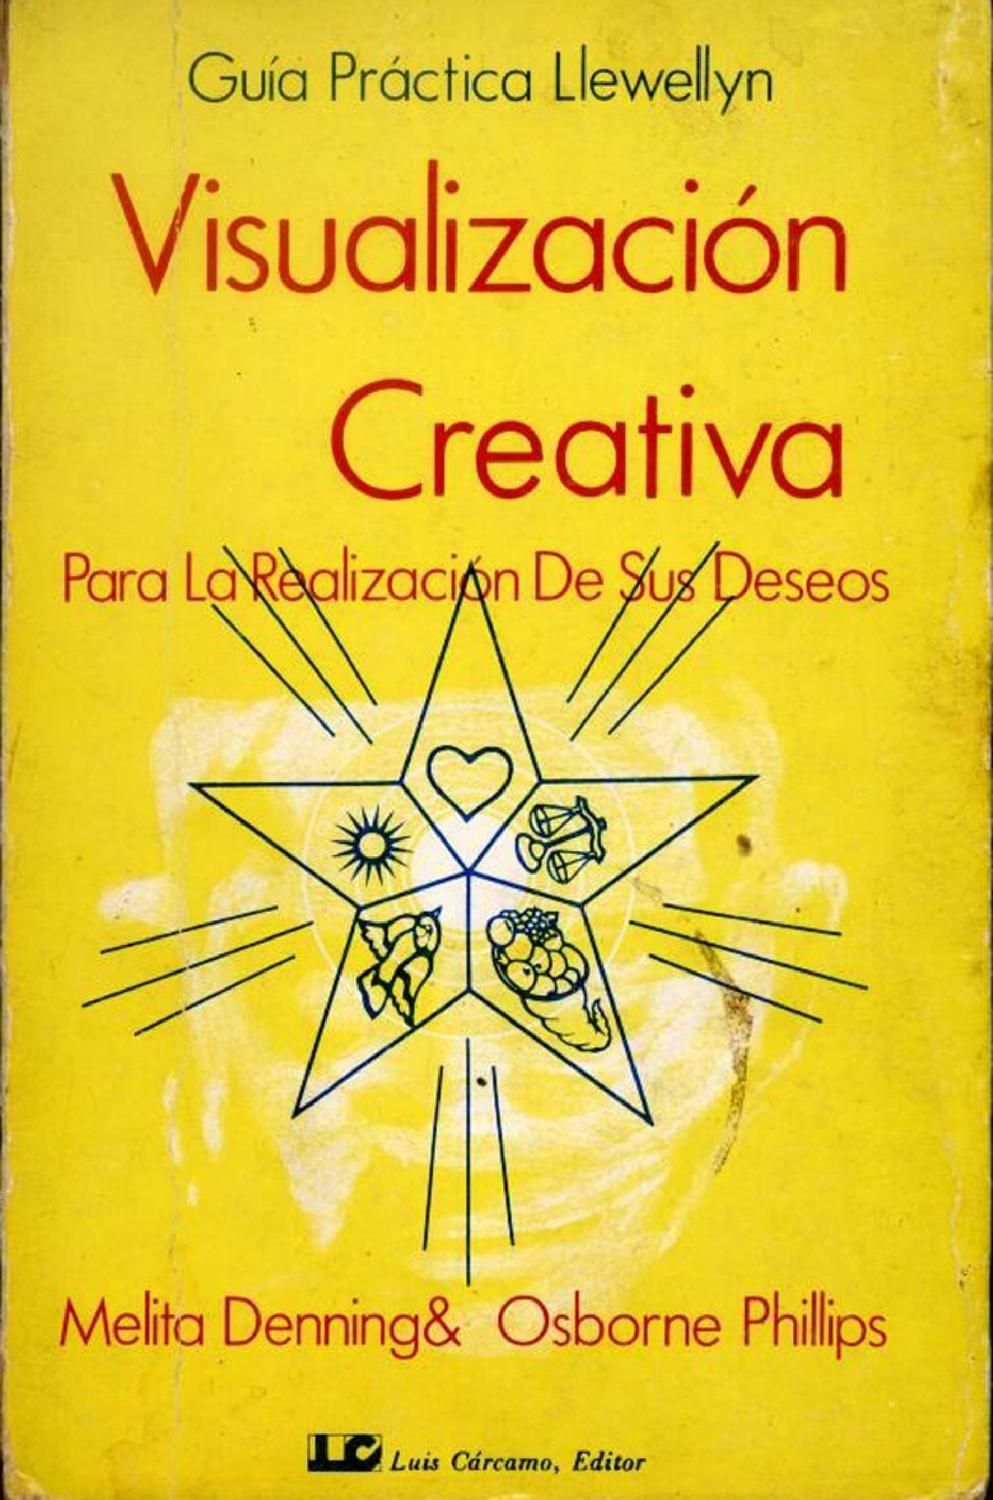 Libro Visualizacion Creativa Denning Y Phillips Visualización Creativa Guía Libros